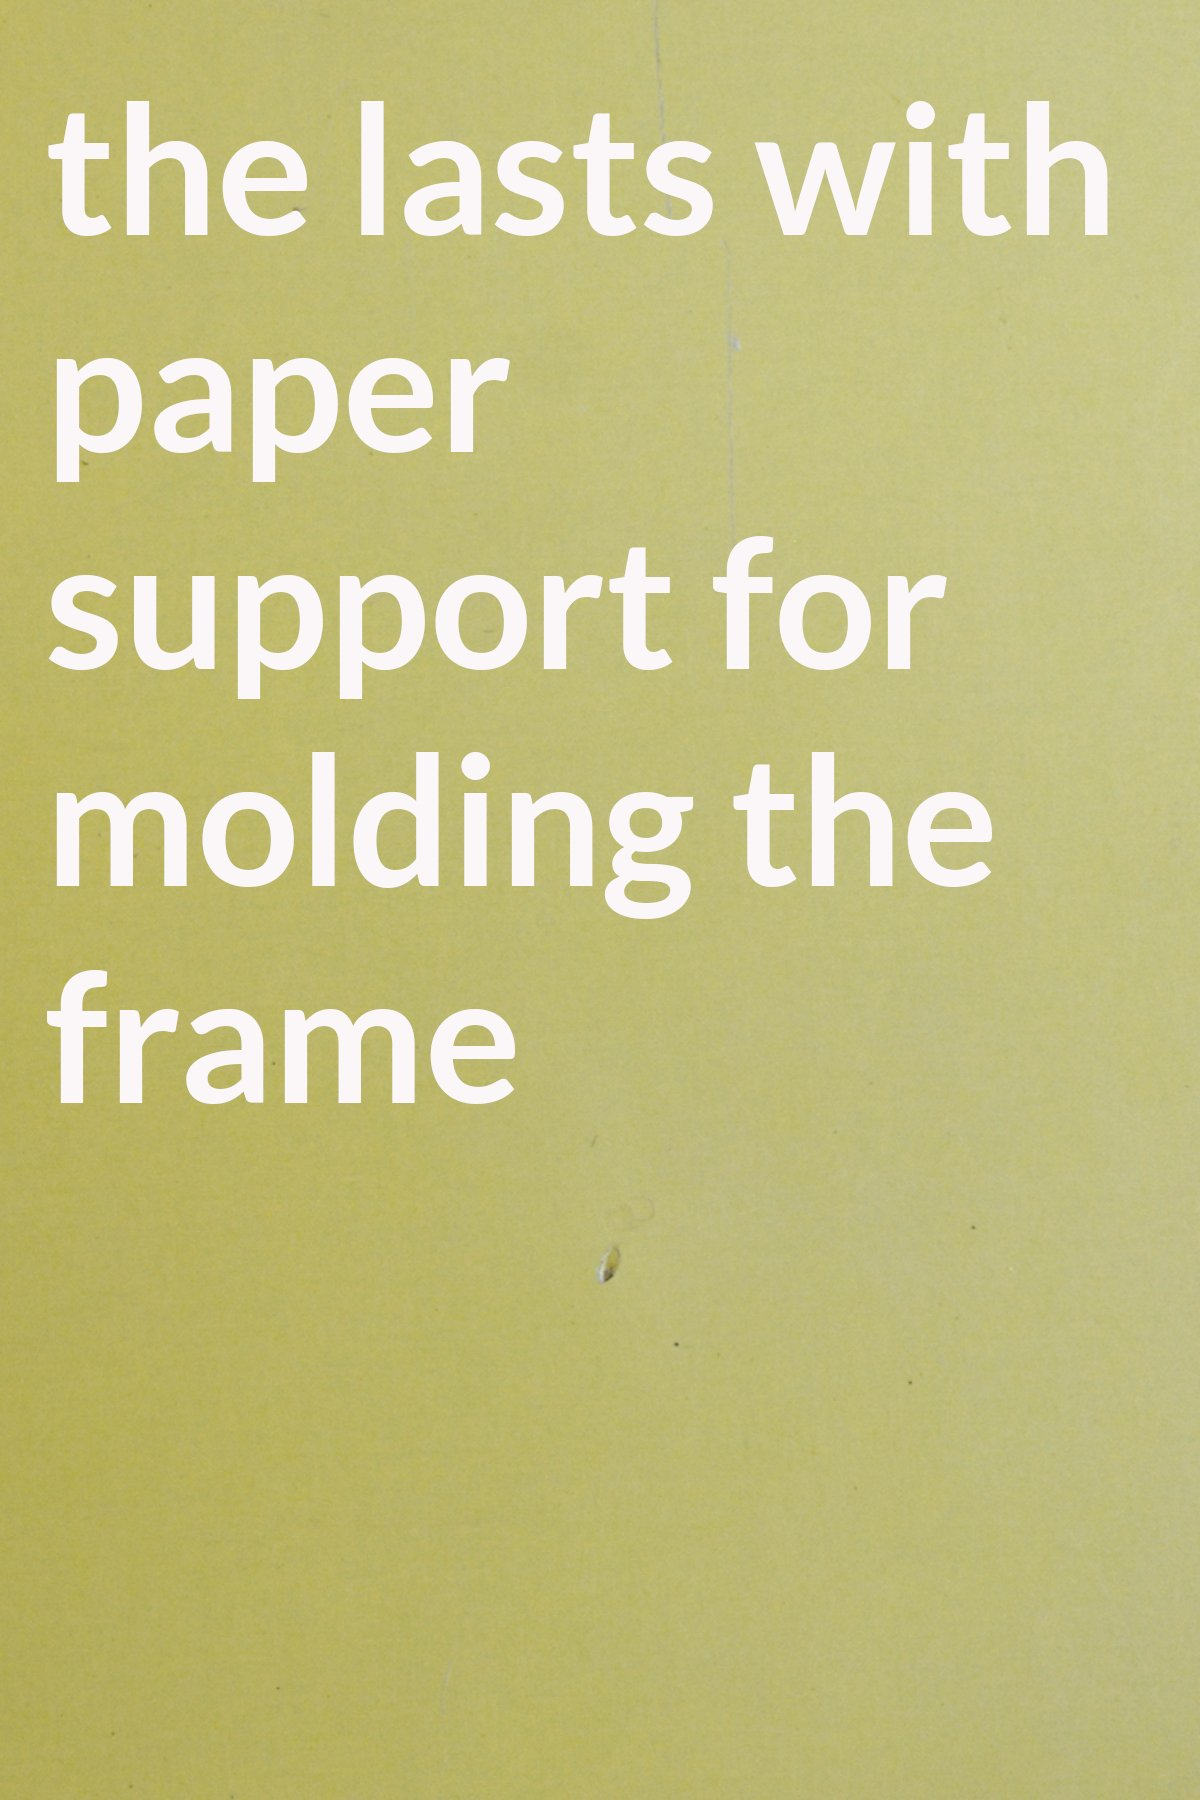 the lasts with paper support for molding the frame